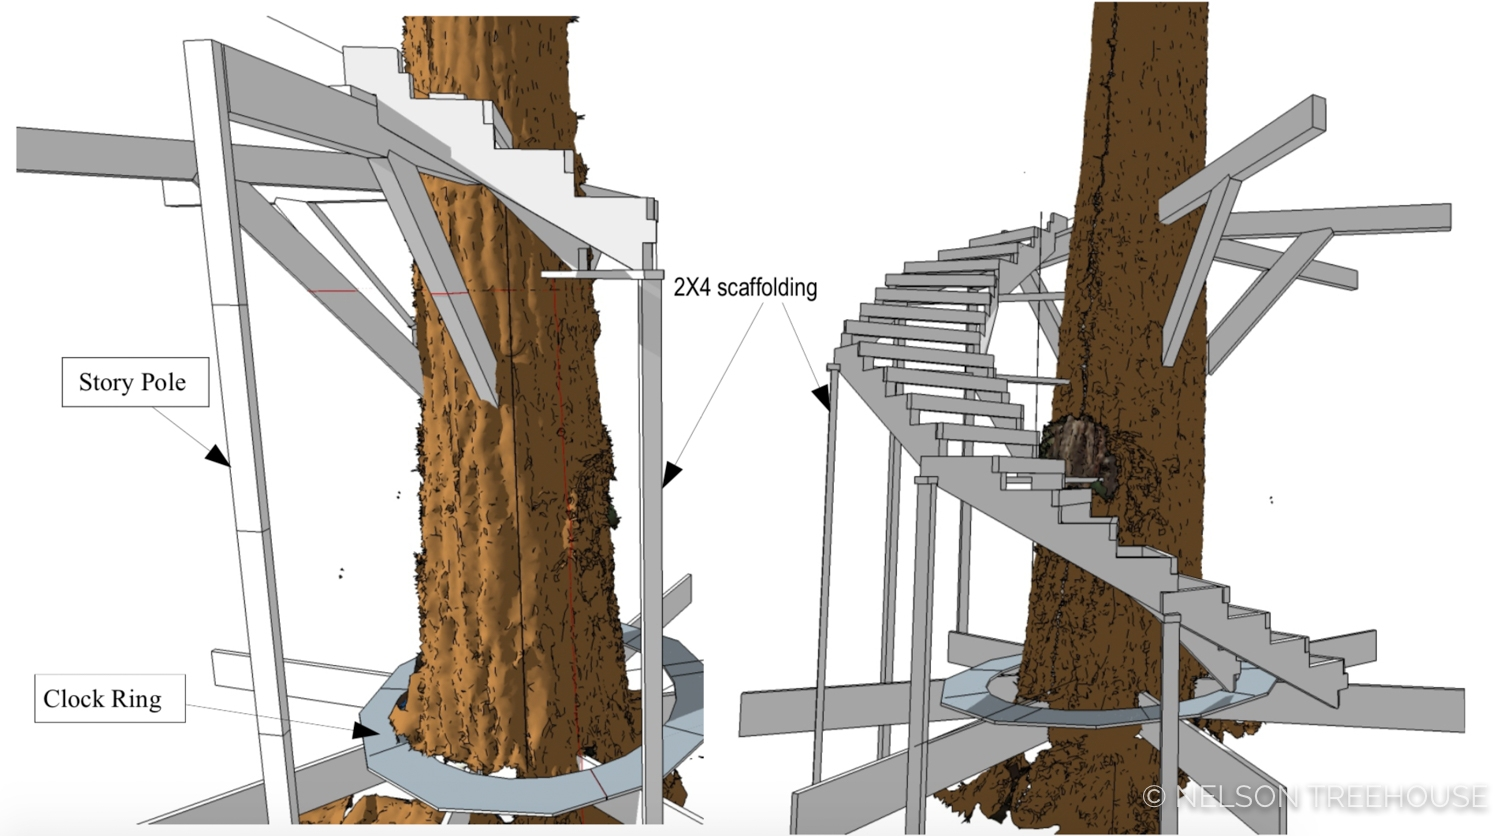 Treehouse Winding Staircase 5 Steps With Pictures Instructables   Spiral Staircase Around Tree Trunk   Treehouse Masters   Ter Kulve   Canopystair   Robert Mcintyre   Wooden Stairs